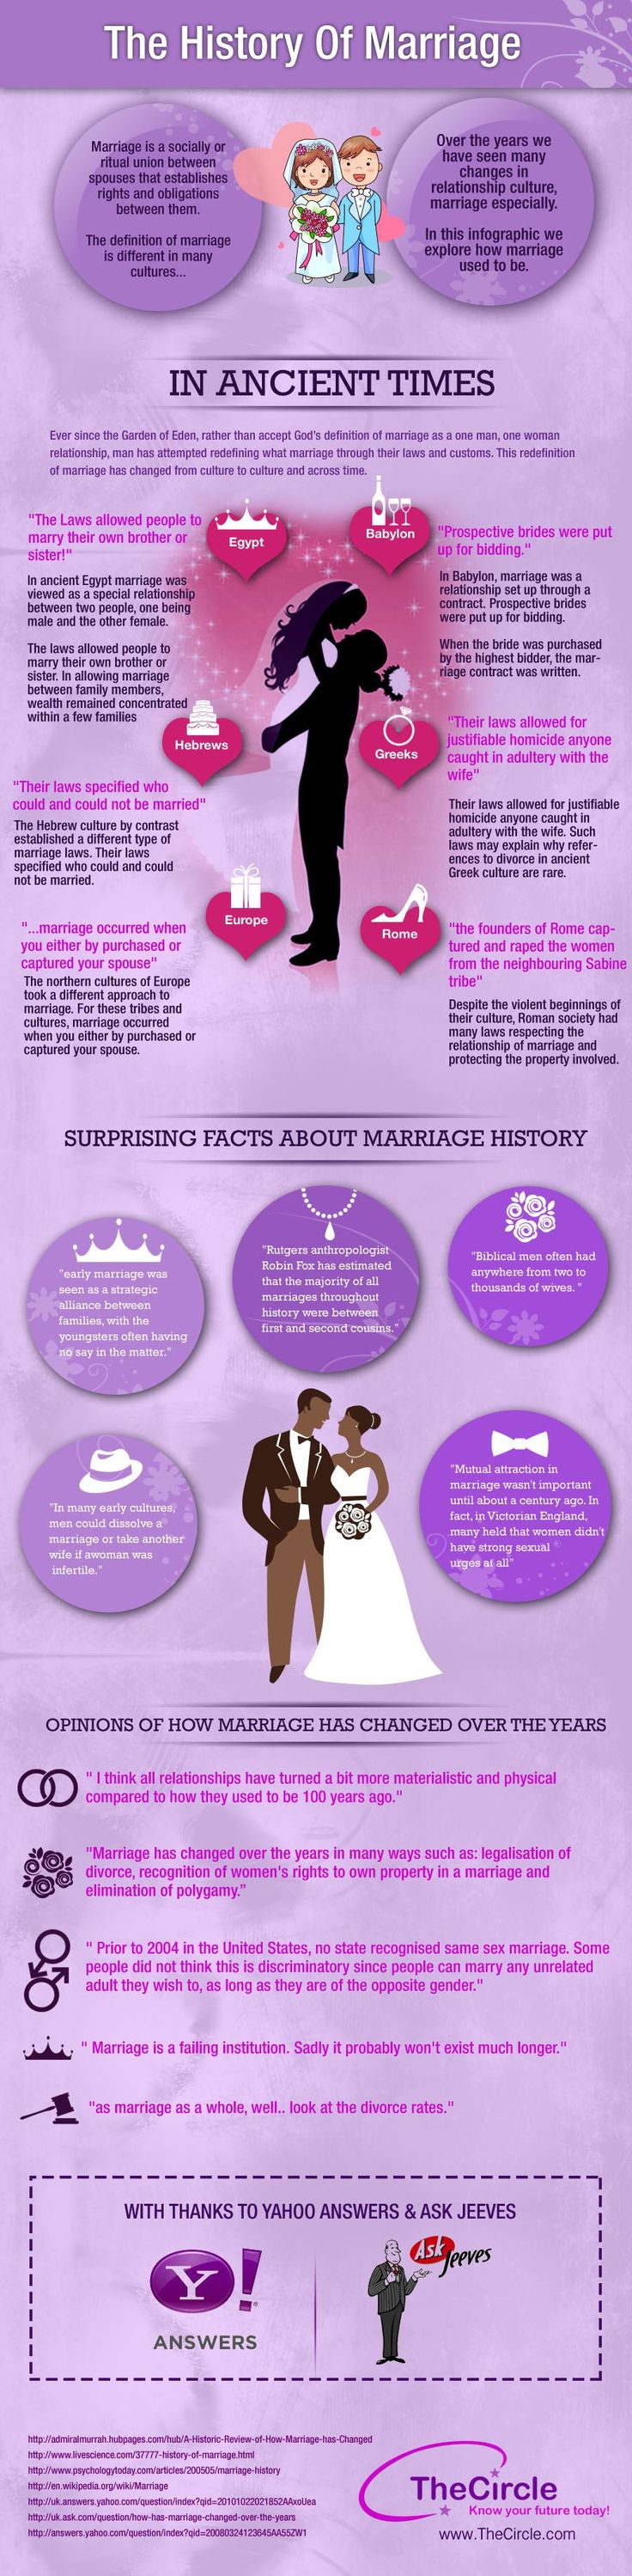 societal expectations about marriage changed over the years The american family: where we are people in the united states today have higher expectations of parenting and marriage if we look back over the last.